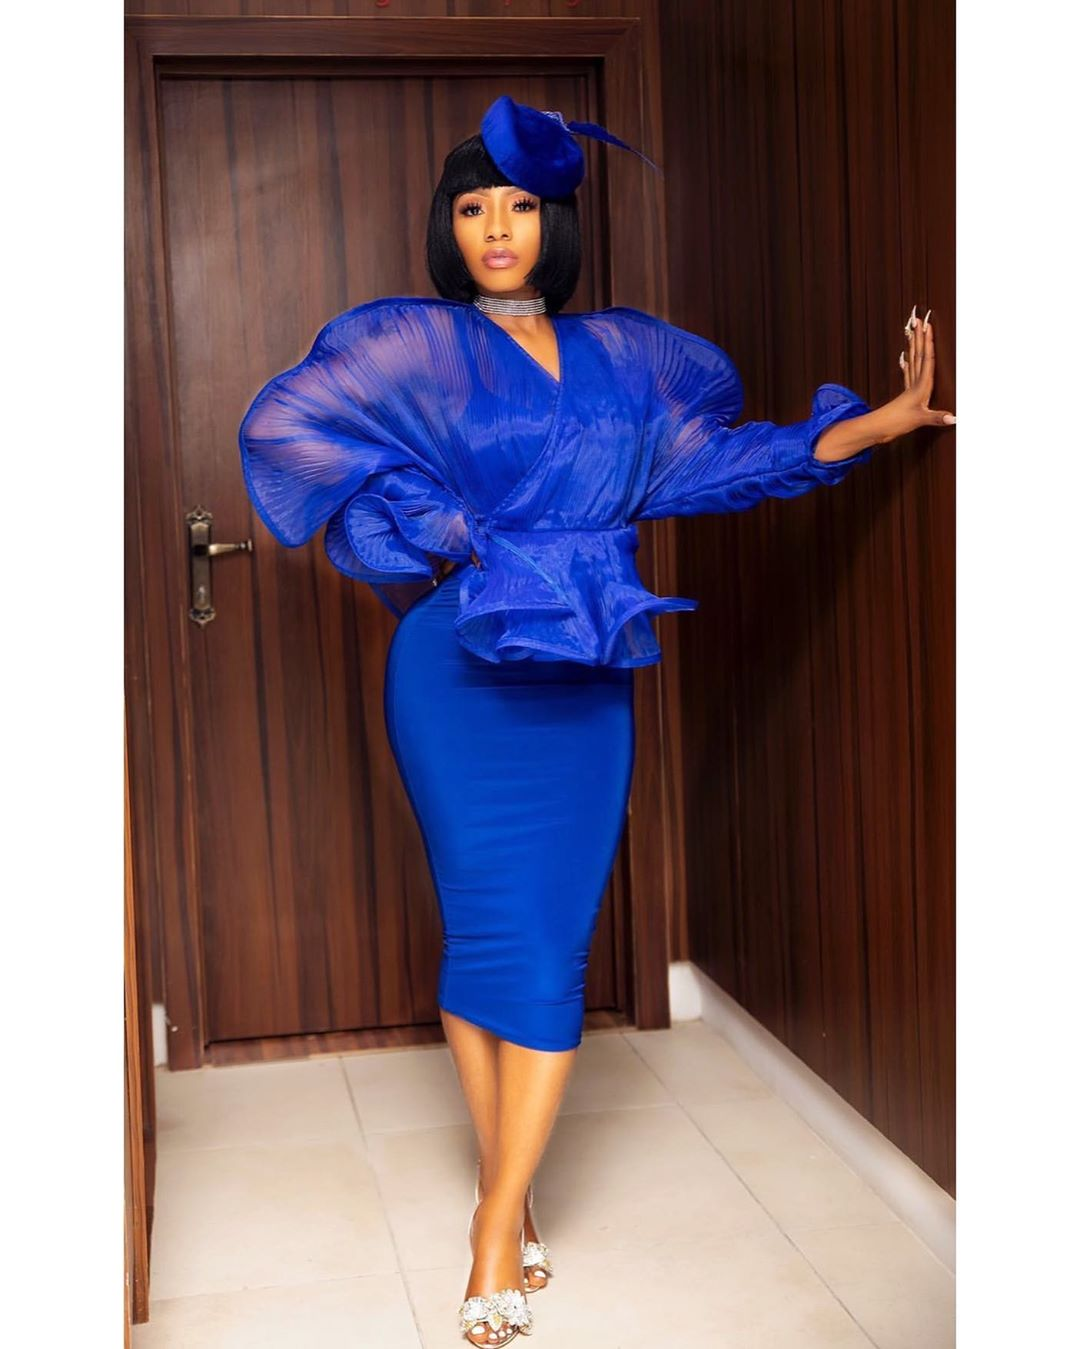 Mercy Eke dazzles her fans rocking a sexy Blue gown